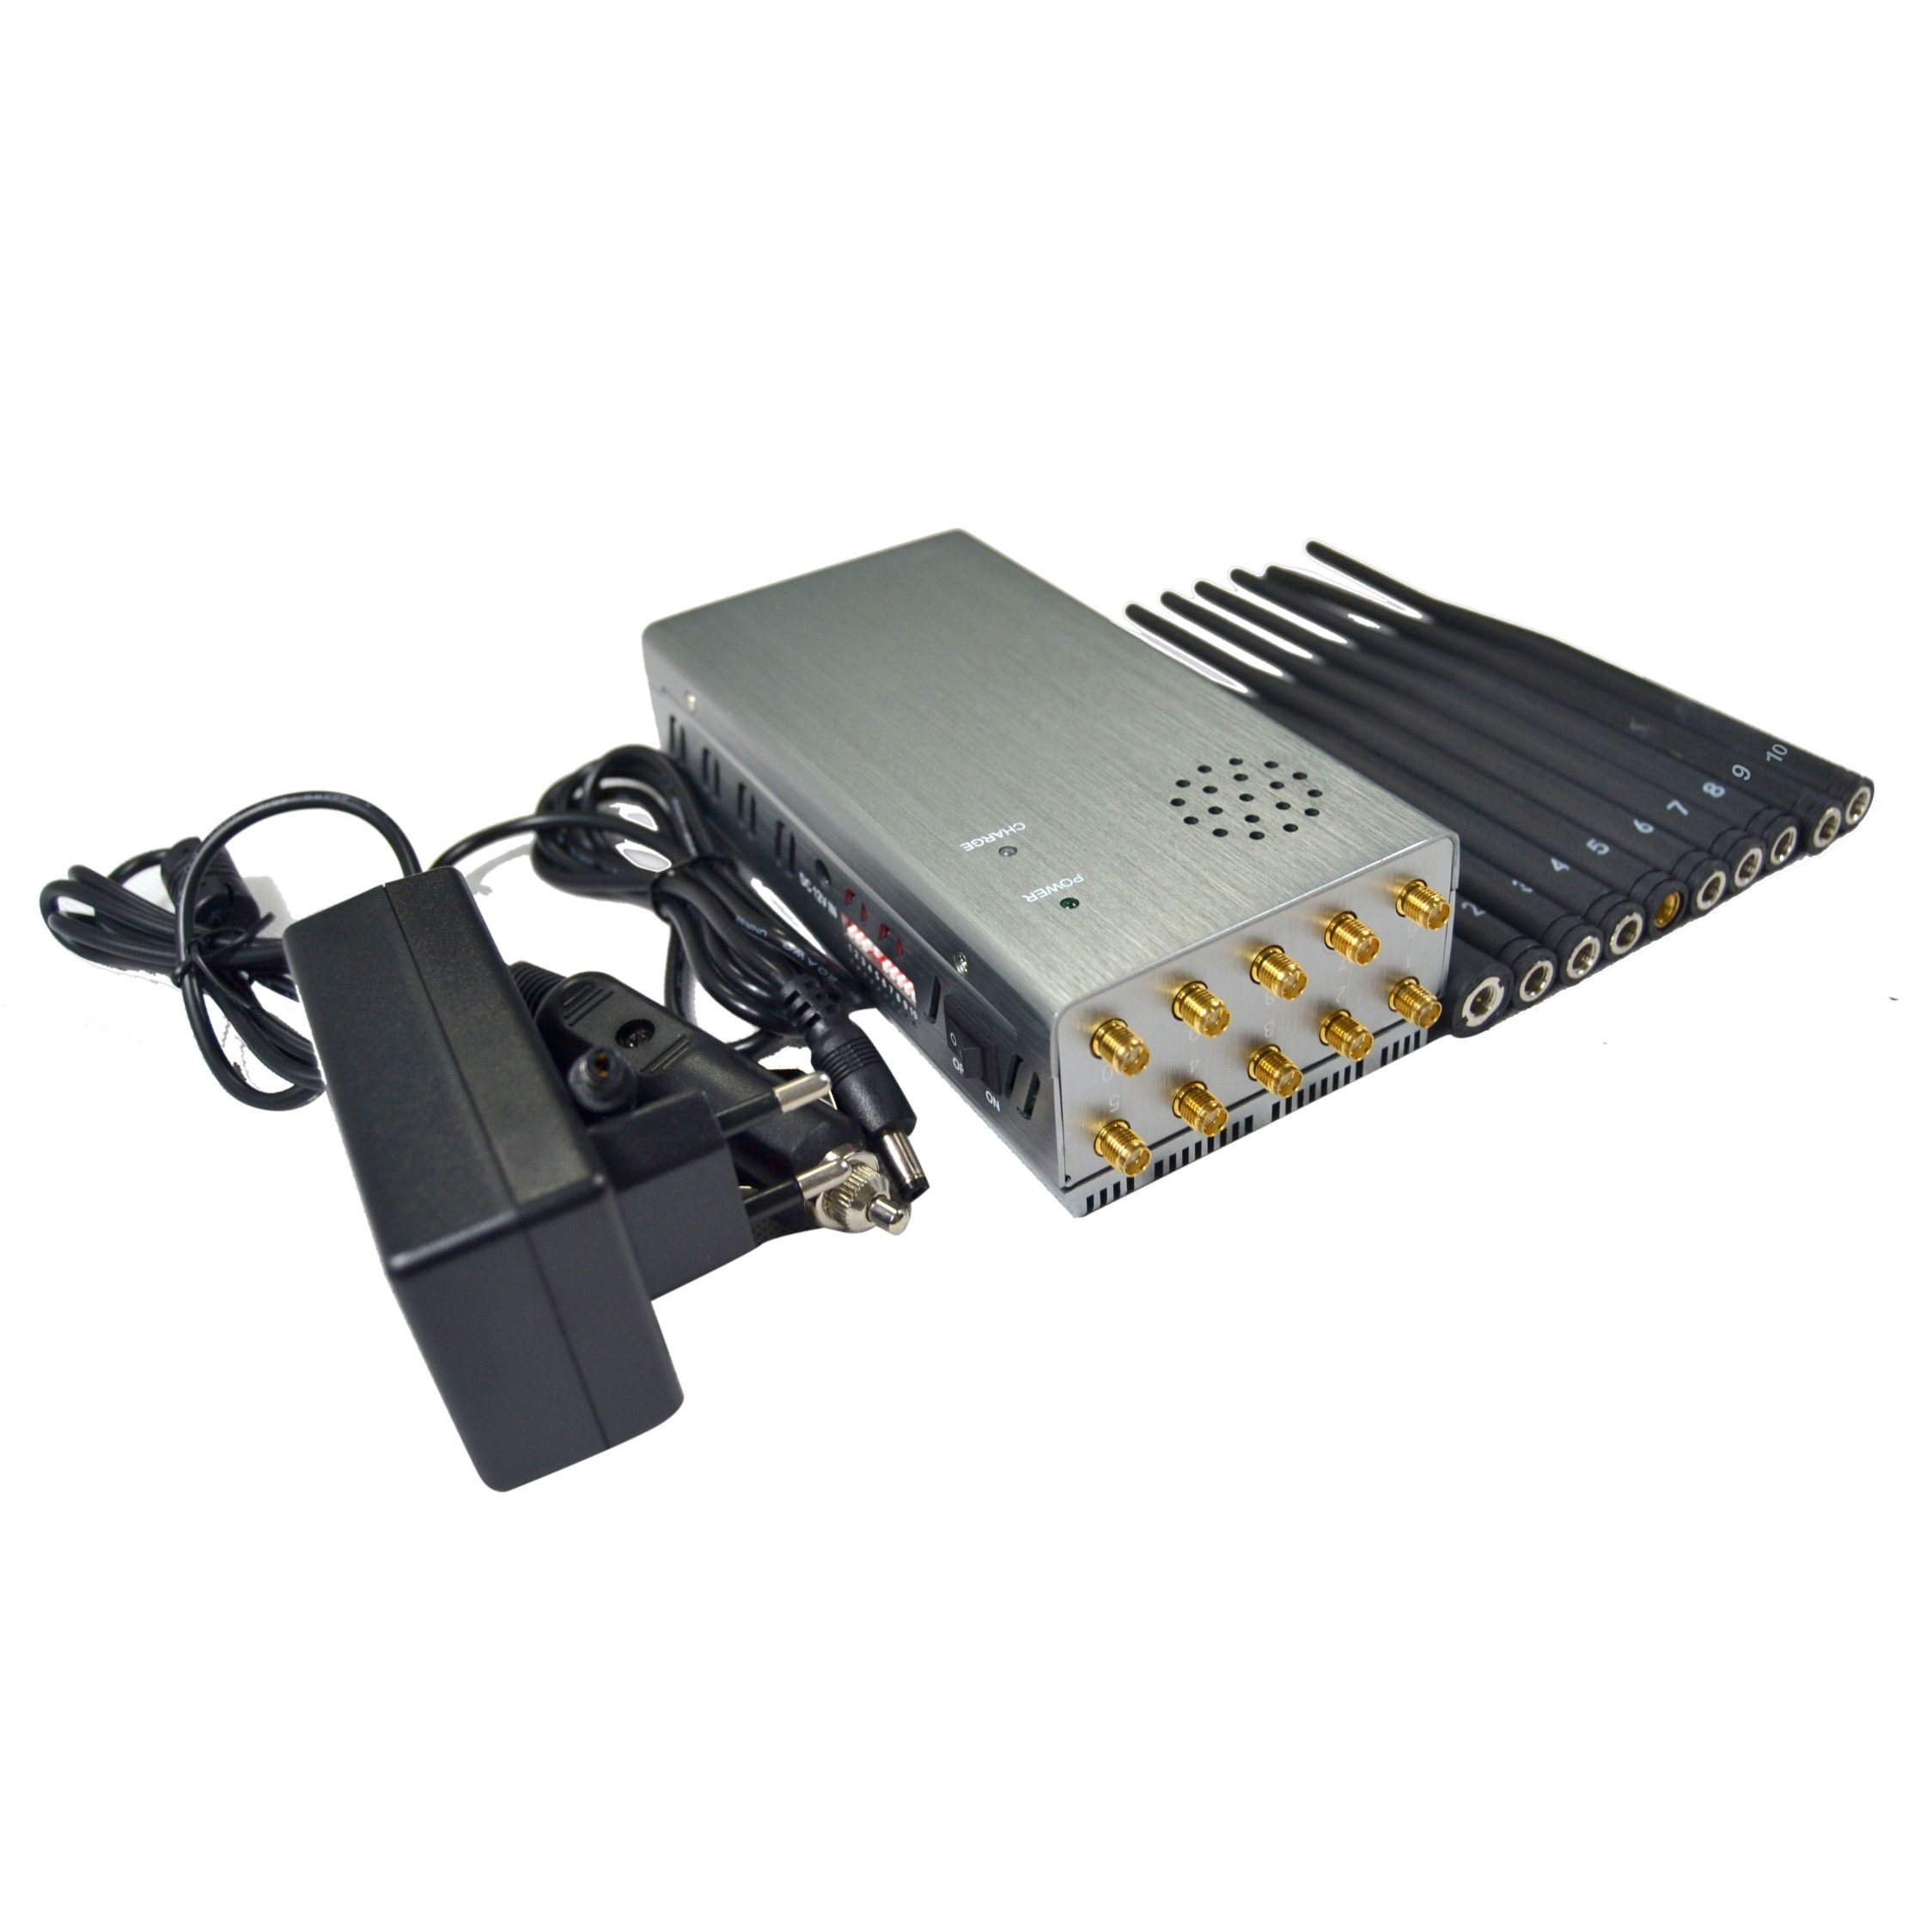 Cell jamming doj attorney - China Large Battery Volume Portable Jammers with 10 Antennas Car Using - China Mobile Phone Jammer, Full Band Signal Blockers